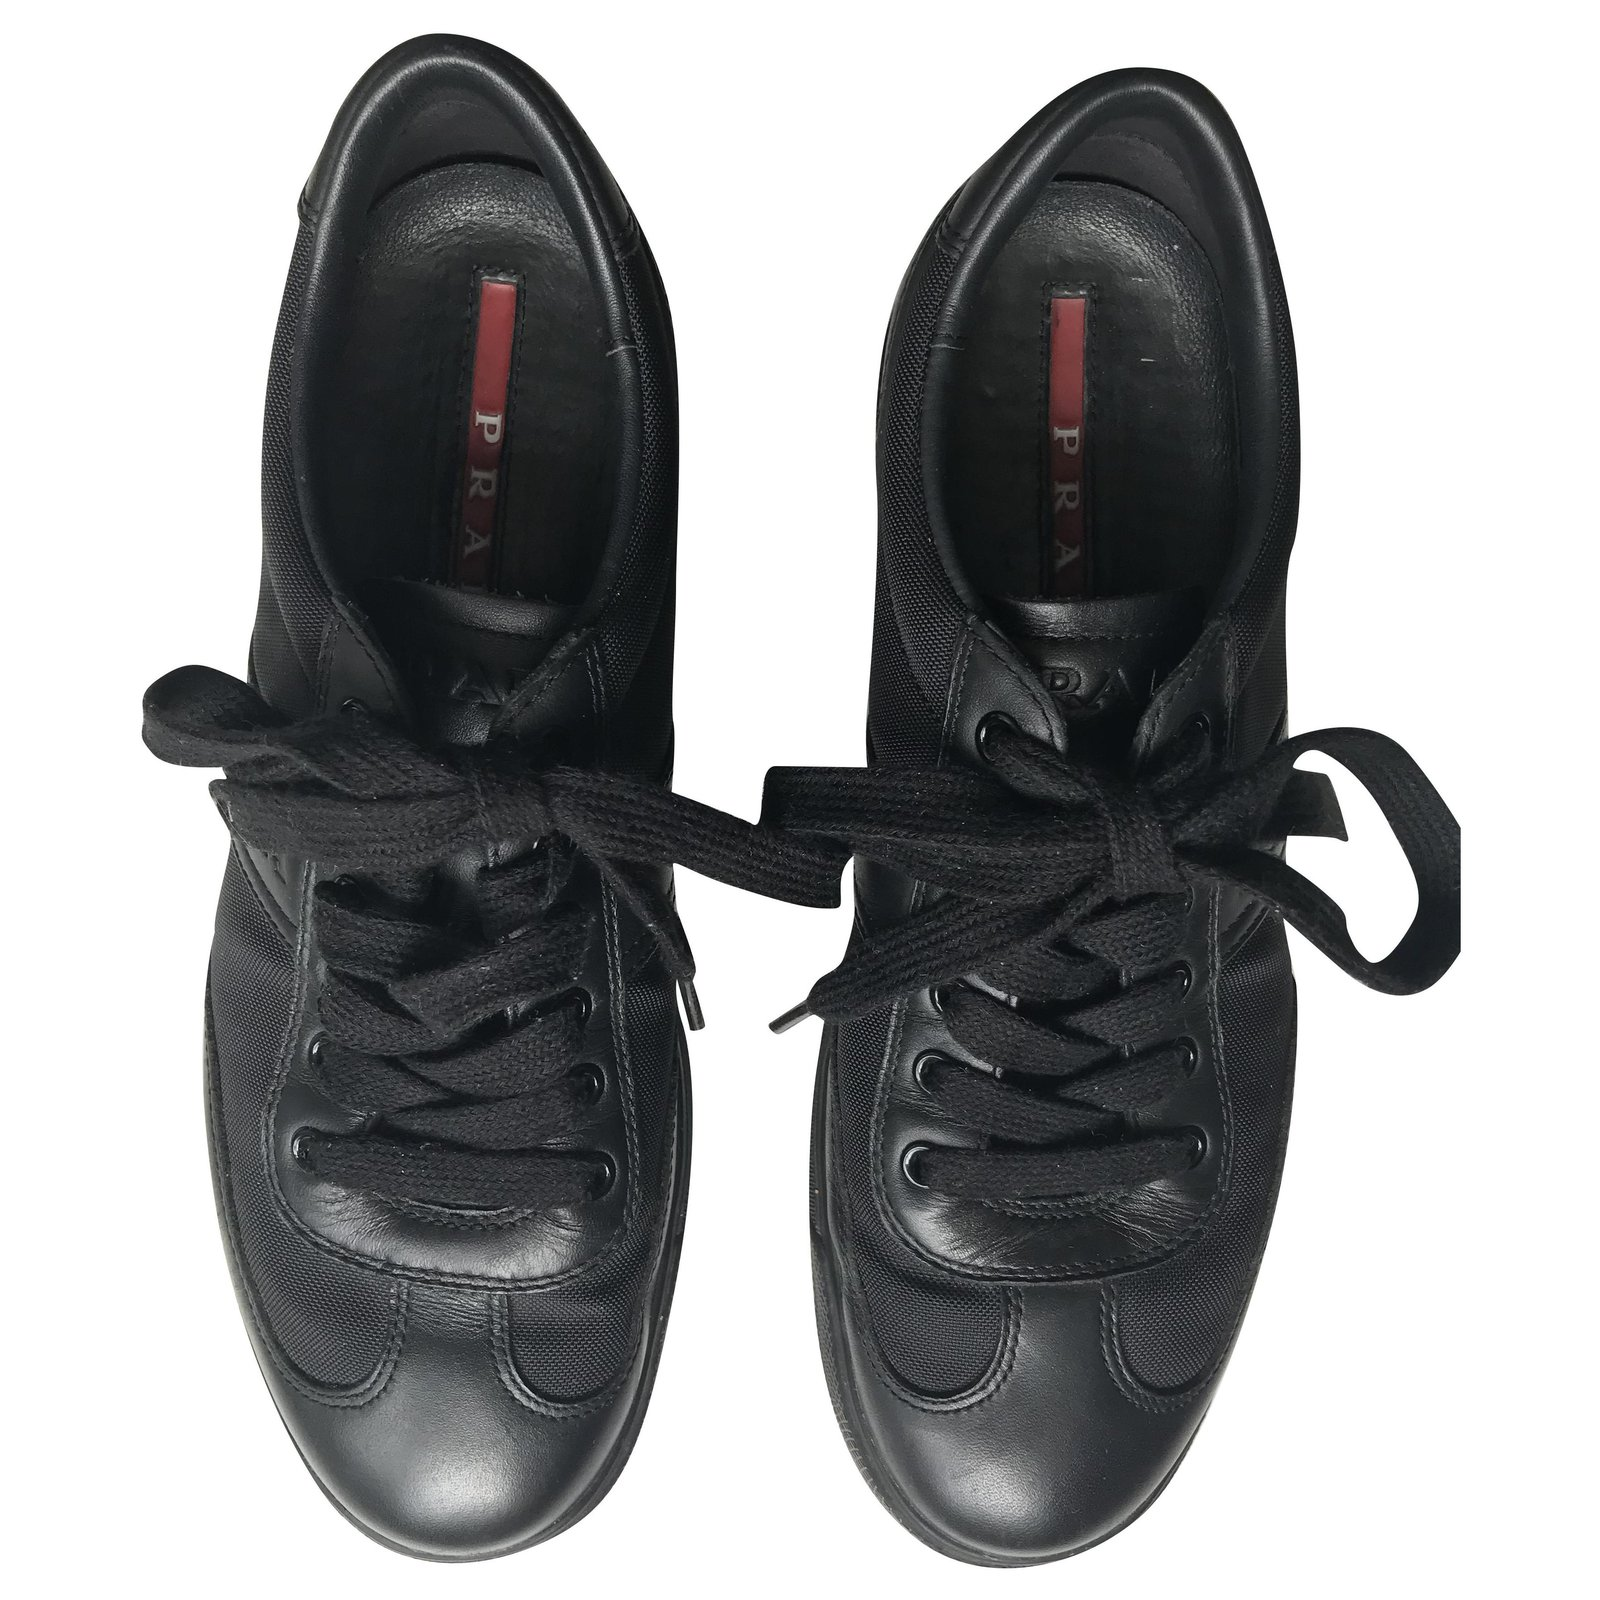 Prada Low Top Trainers Sneakers Leather